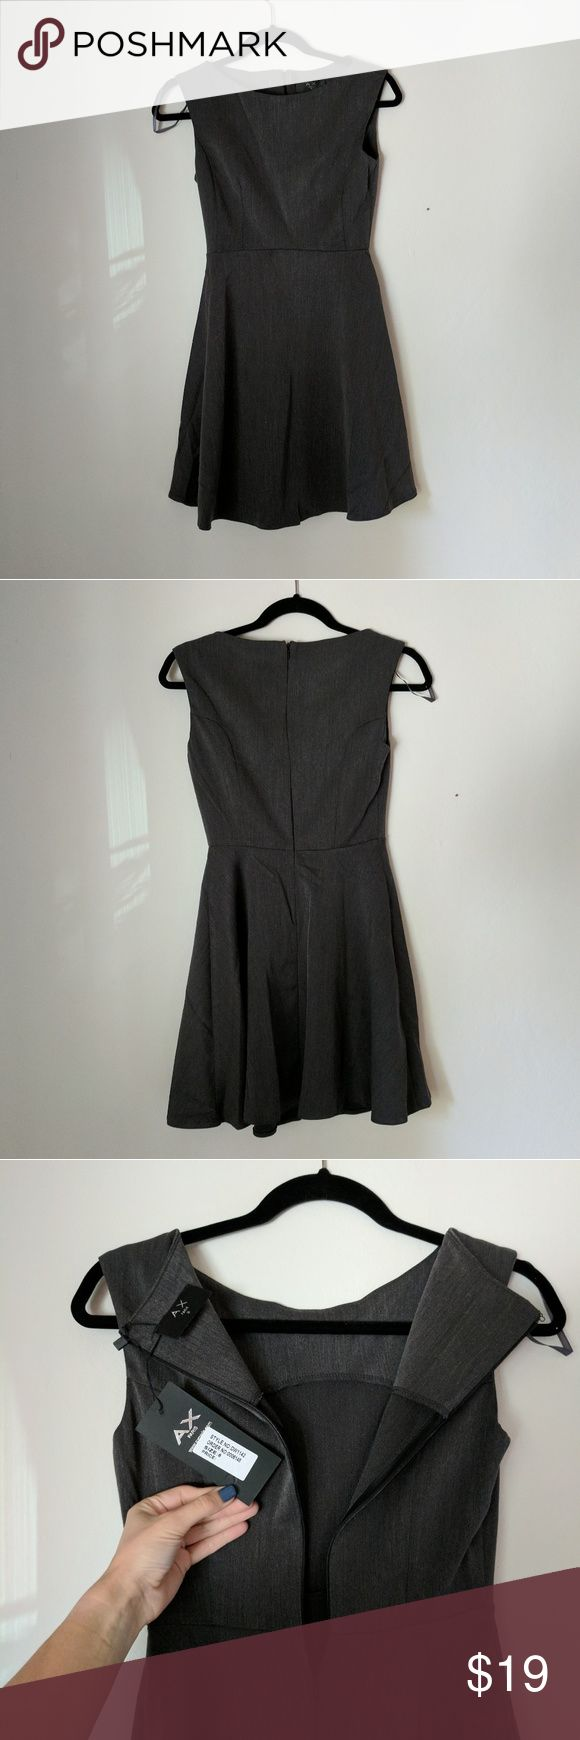 Ax Paris skater dress Ax Paris skater dress  - dark grey/charcoal color - brand new, never worn - excellent condition, no flaws - zipper on the back - size UK 8 AX Paris Dresses Mini